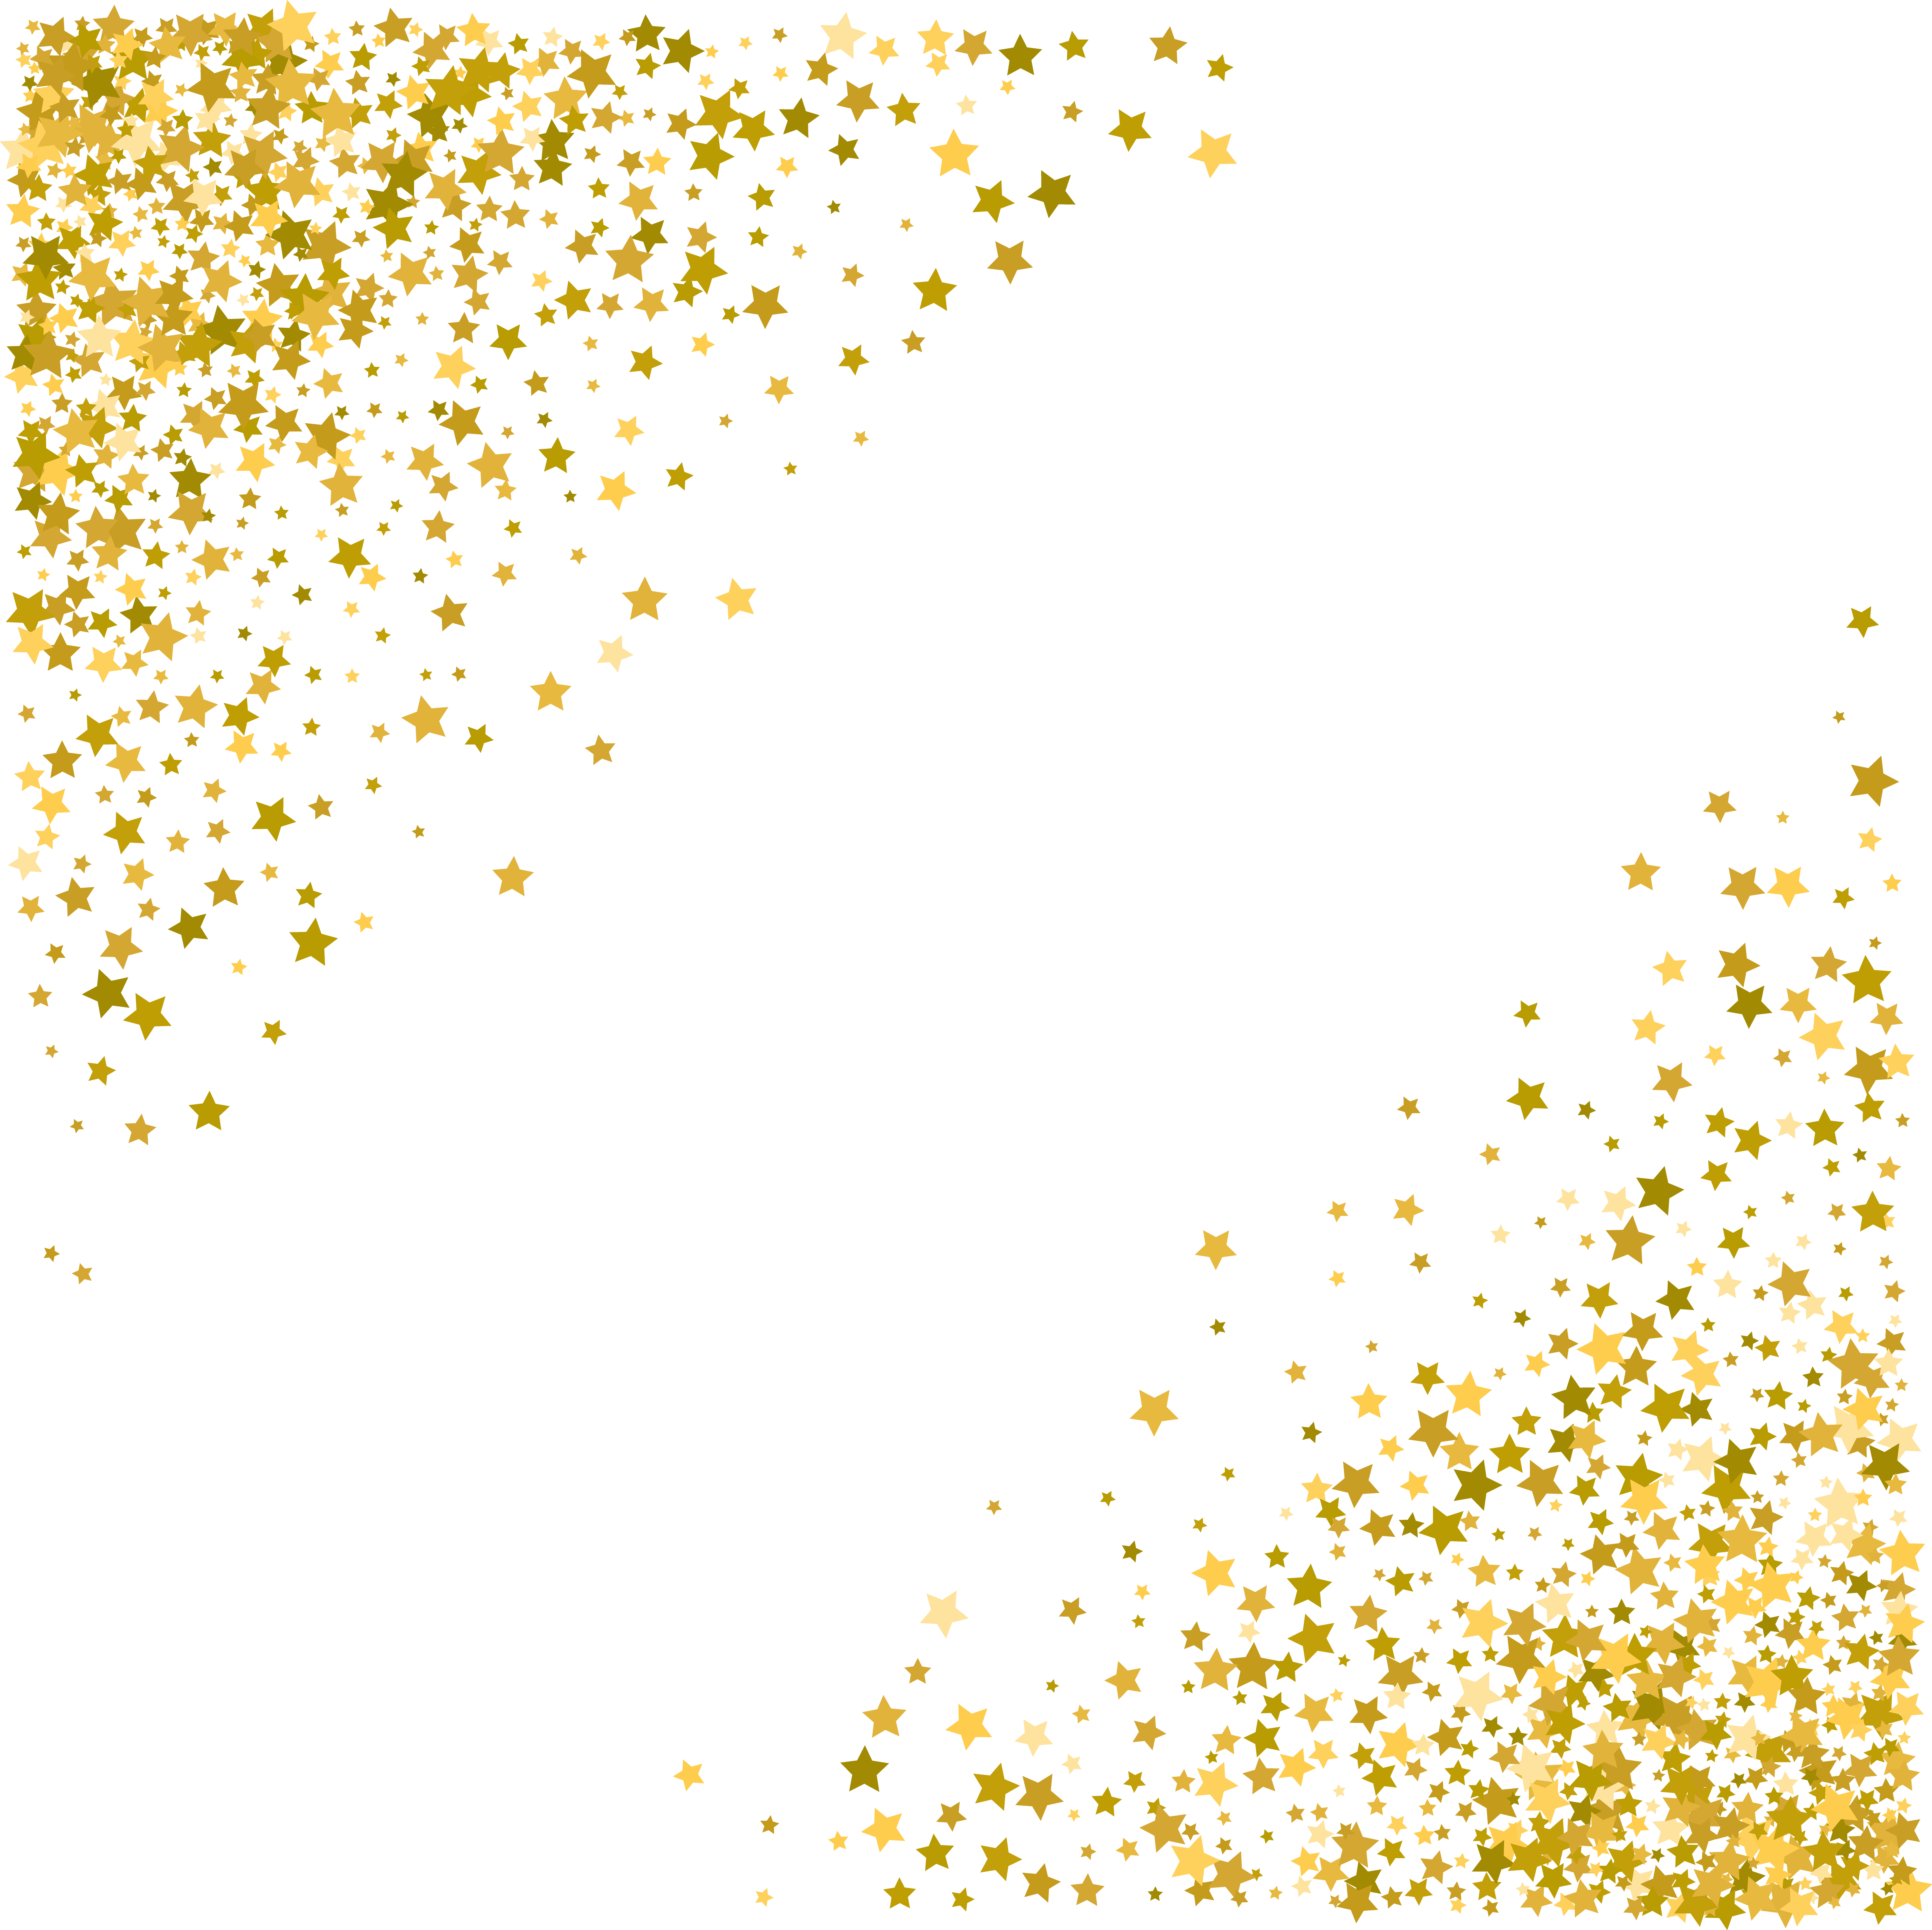 Stars png images. Decoration clipart image gallery